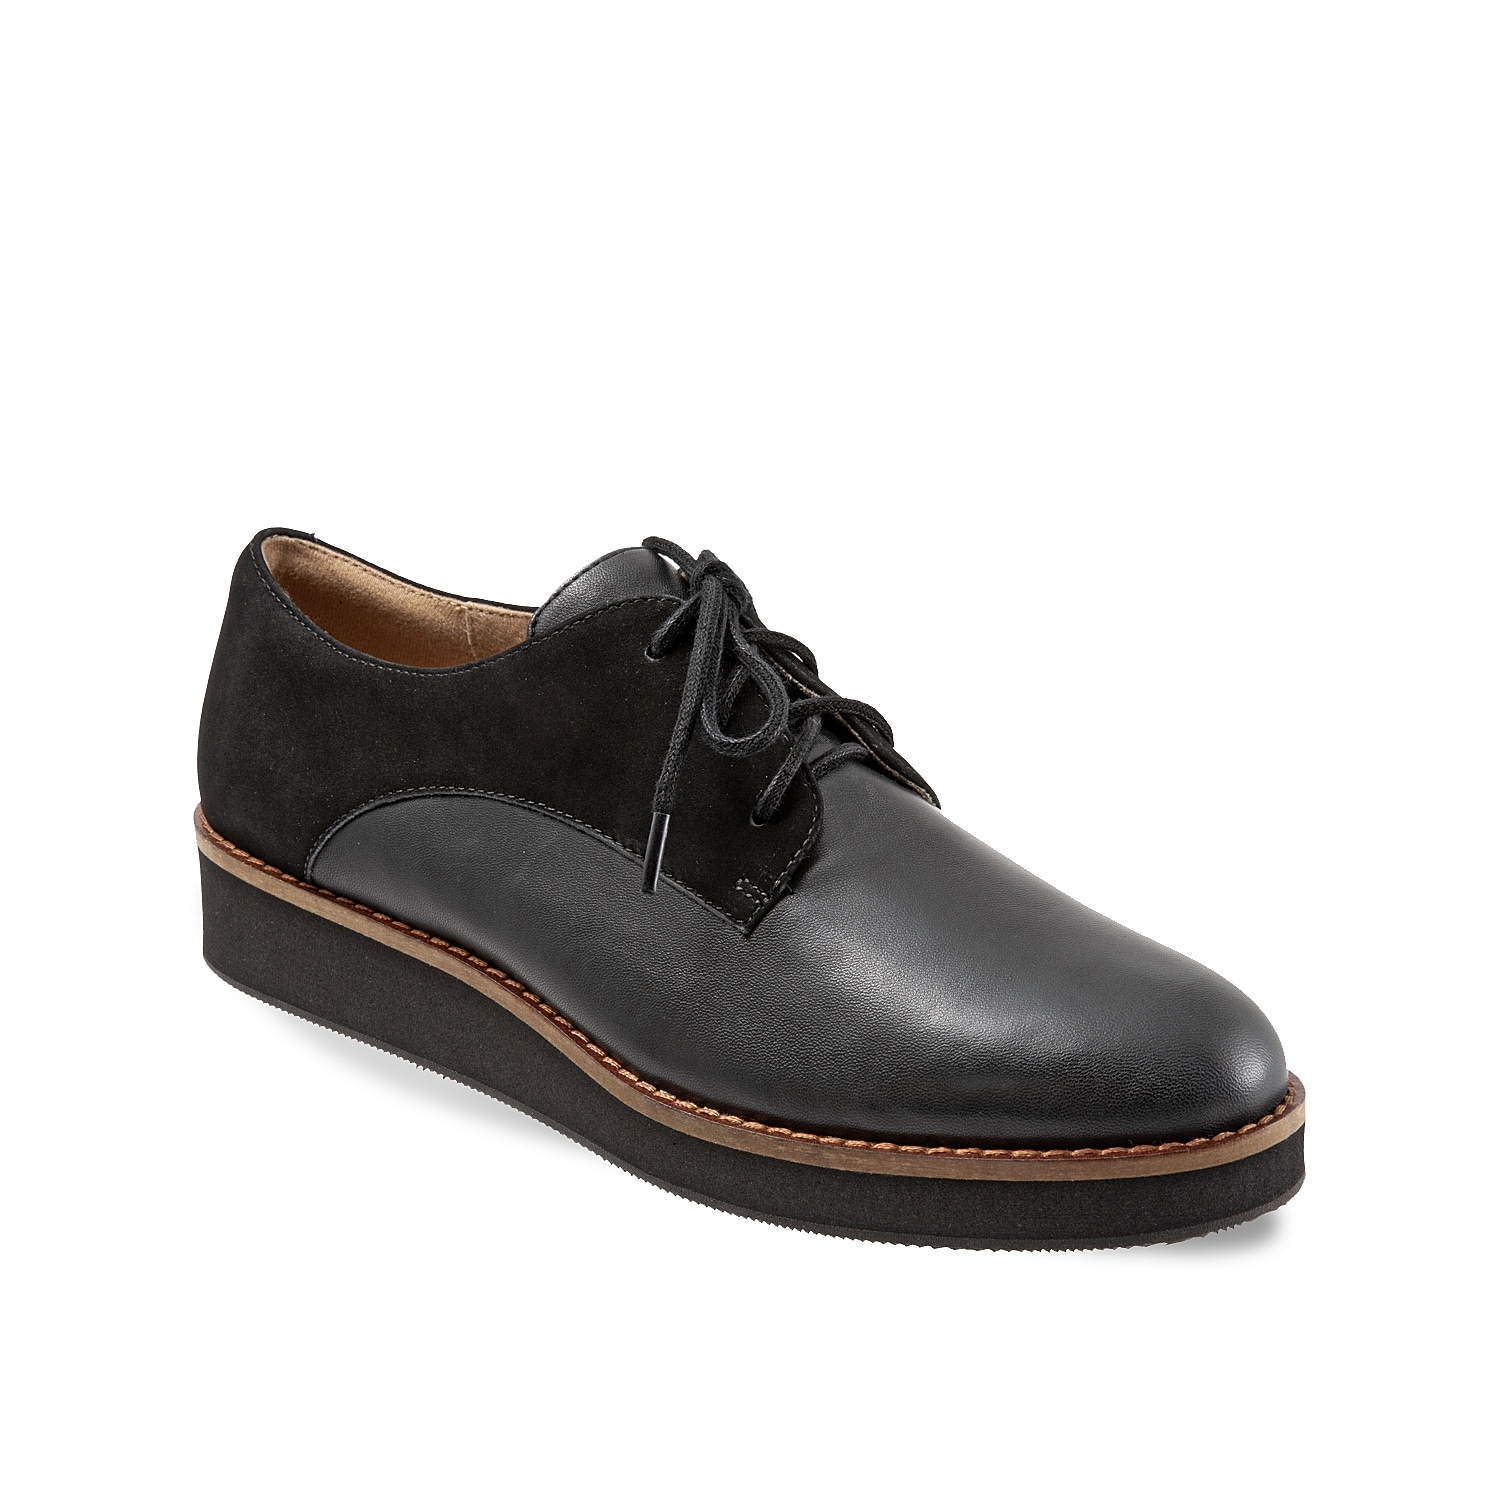 Remix your oxford collection with this dress shoe from Softwalk. The Willis has a subtle texture to the leather upper and is fitted with a lightweight EVA outsole.